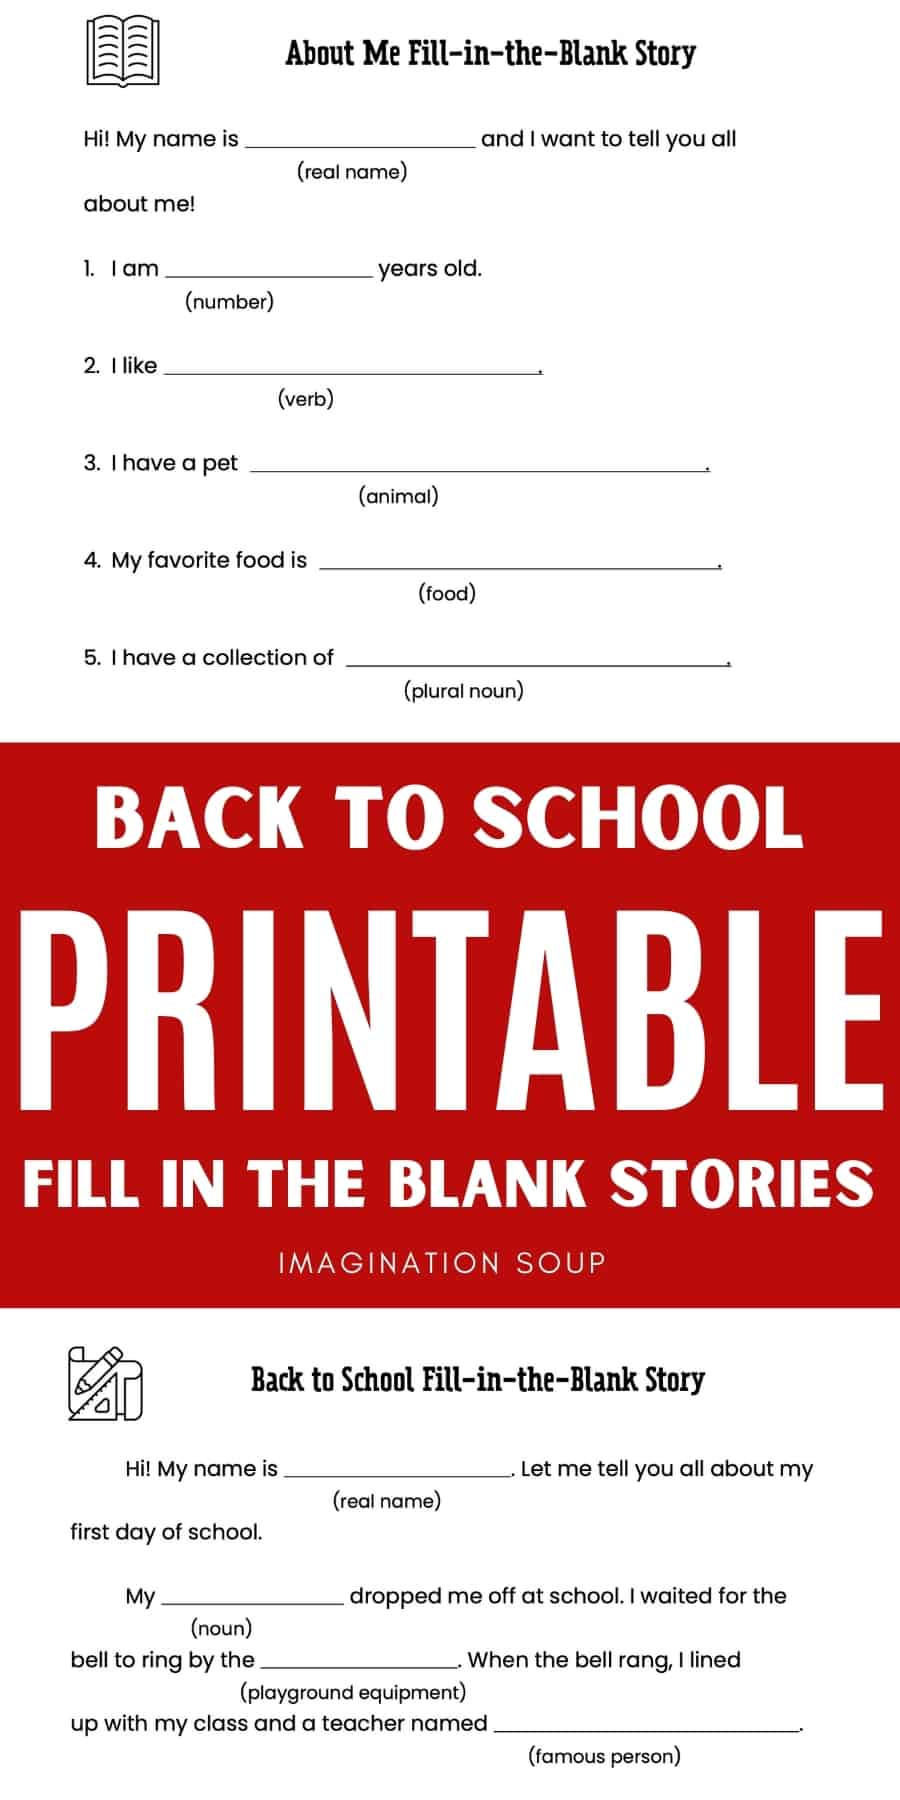 back to school fill in the blank printable stories & Mad Libs